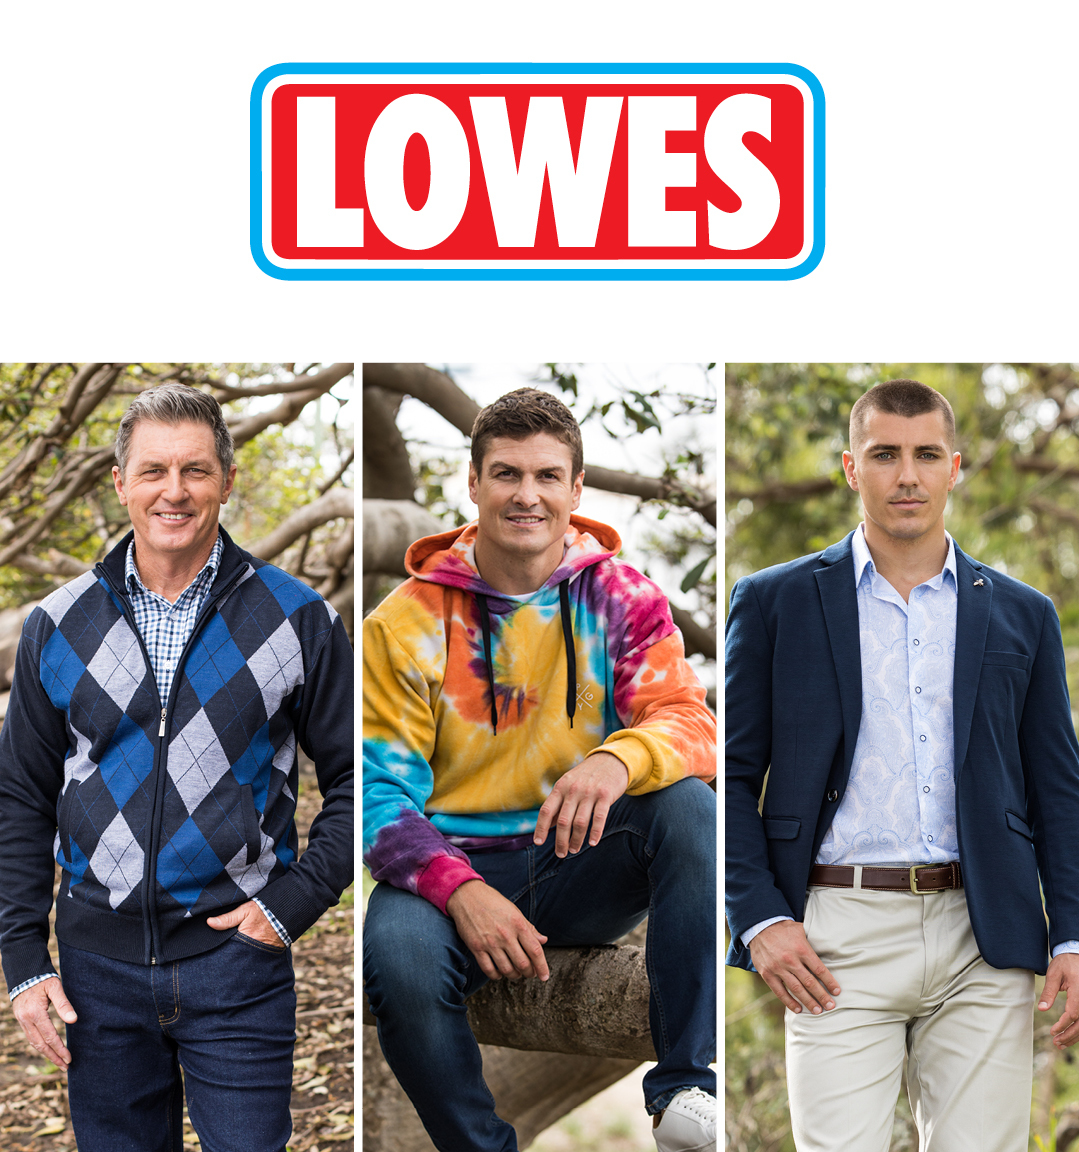 About Lowes